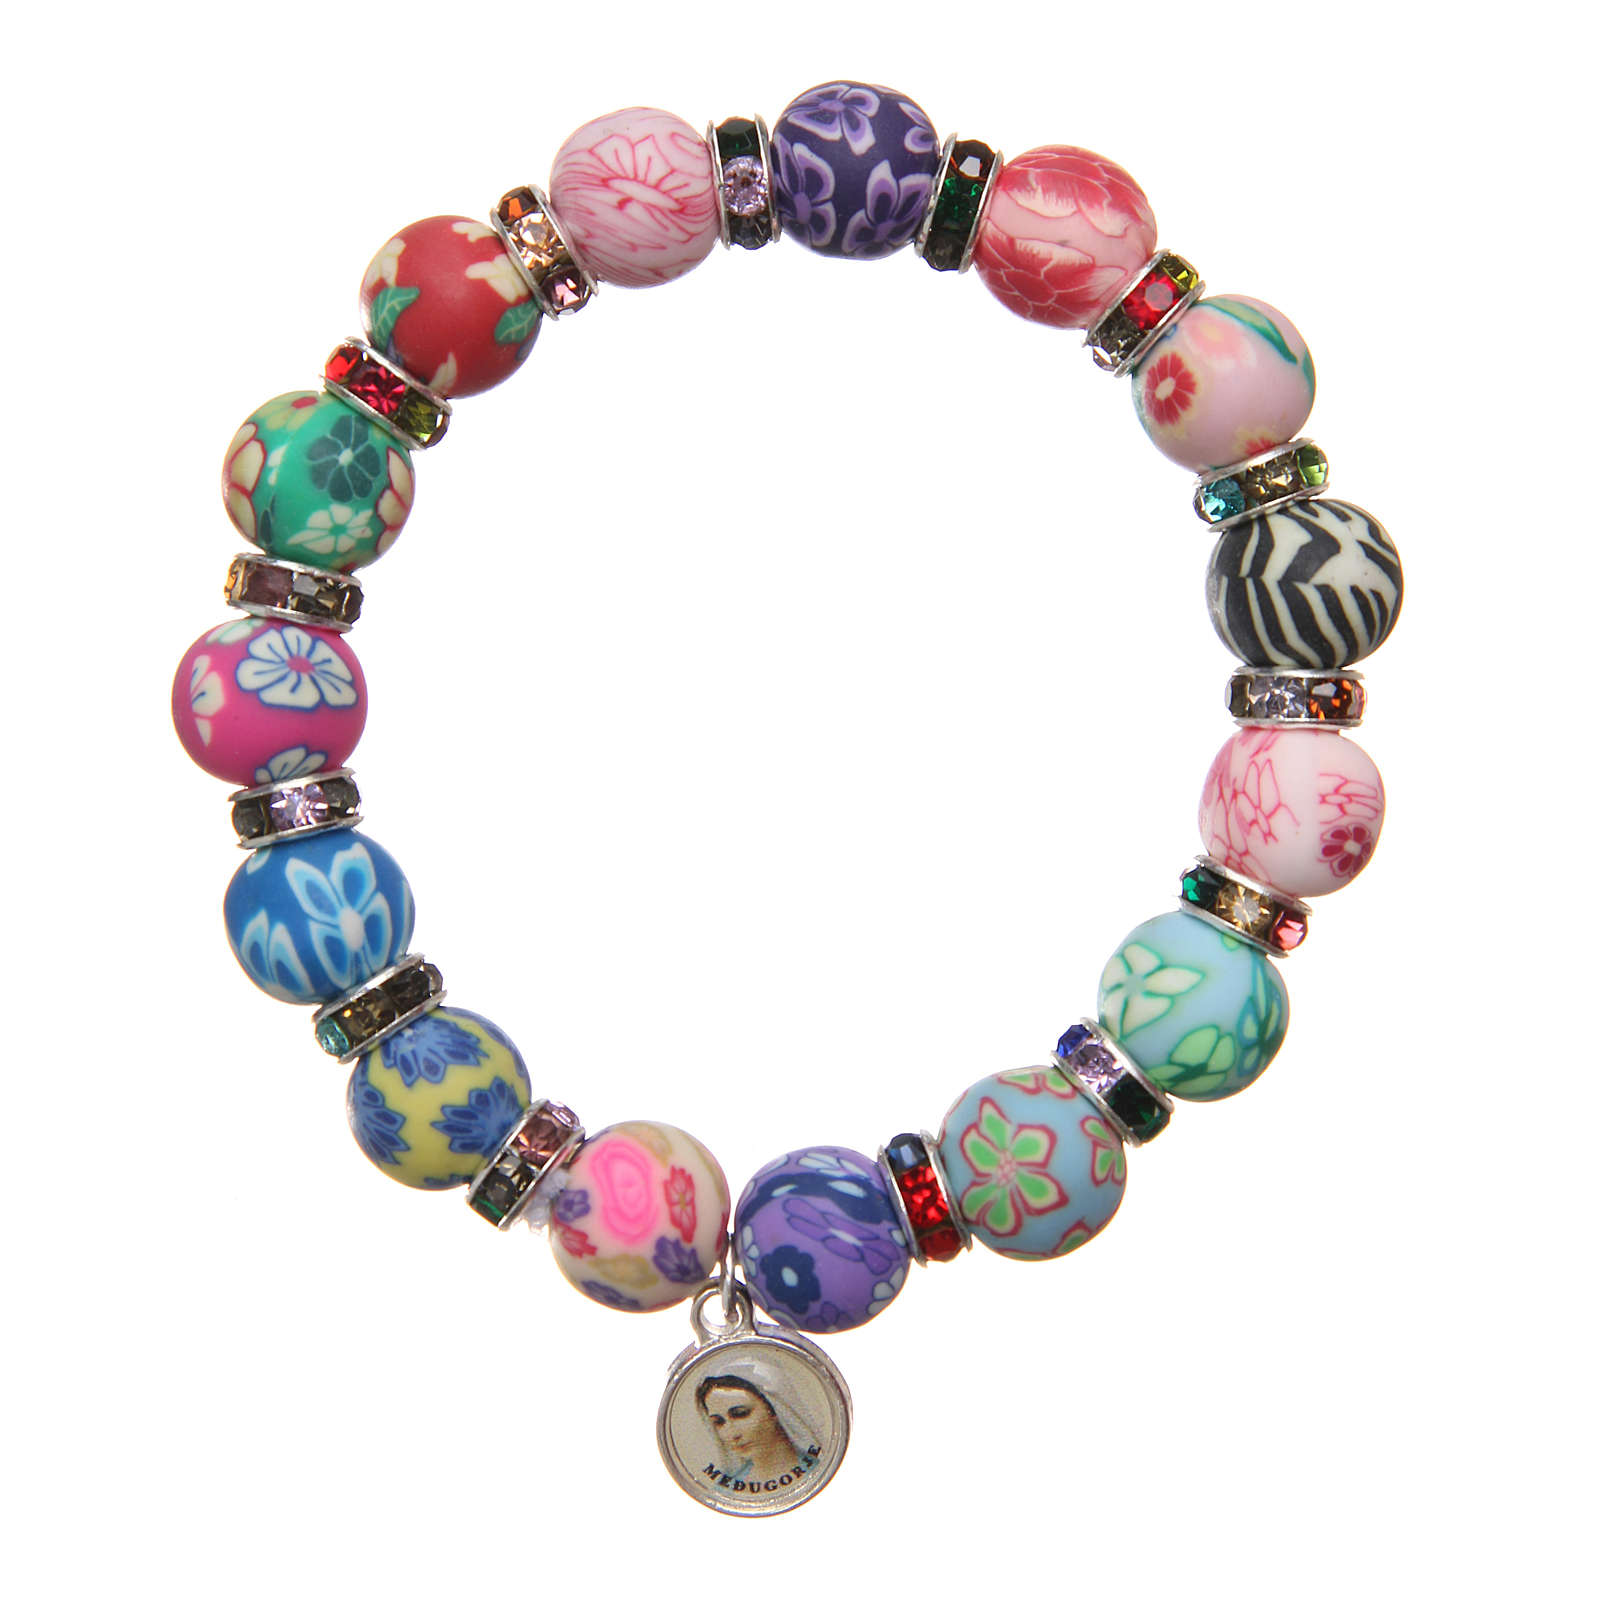 Bracelet Medjugorje multicolor, 11mm beads 4